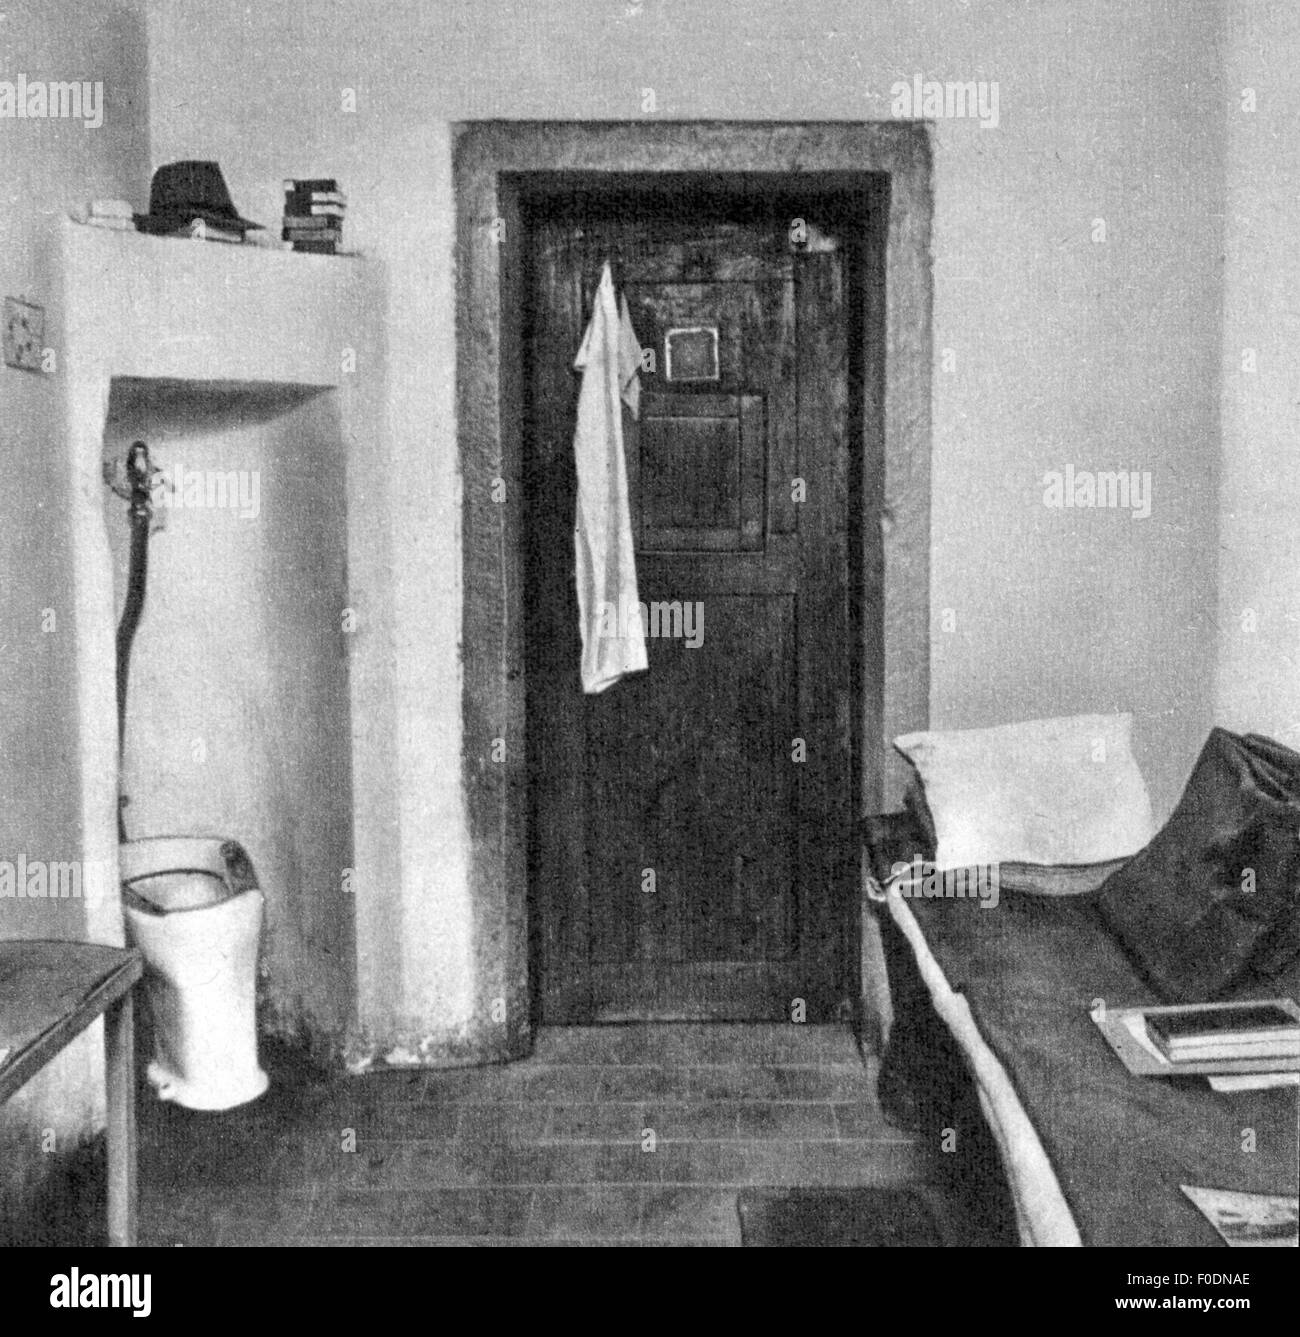 justice, lawsuits, Nuremberg Trials, trial against the major war criminals, prison cell, Nuremberg, 1945 / 1946, Stock Photo